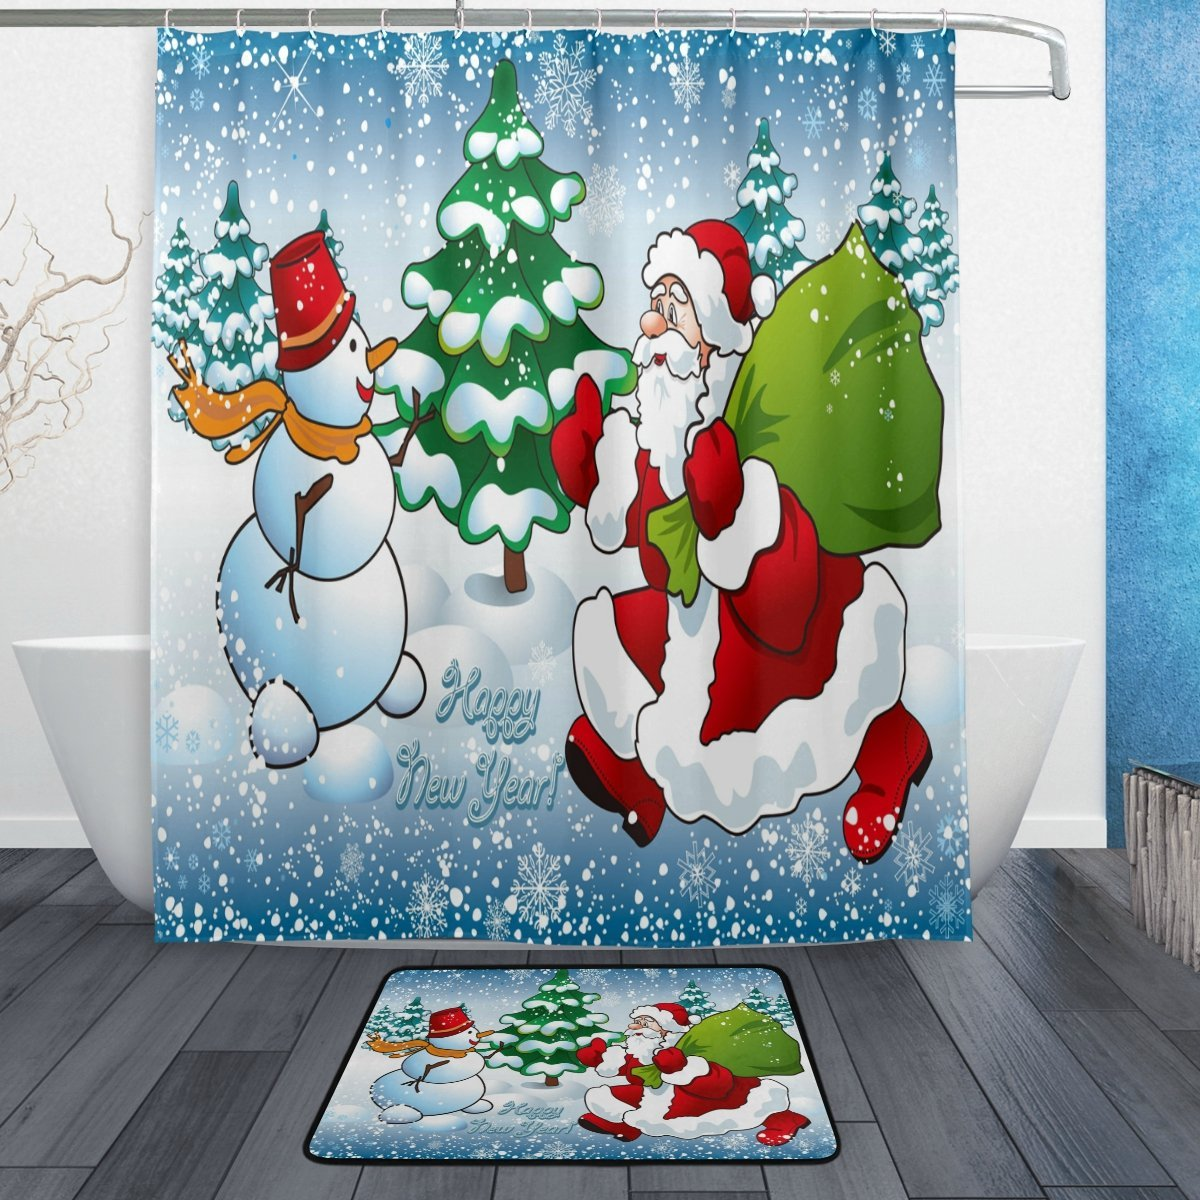 Us 15 59 35 Off Winter Christmas Shower Curtain And Mat Set Santa Claus Snowman Christmas Tree Waterproof Fabric Bathroom Curtain In Shower